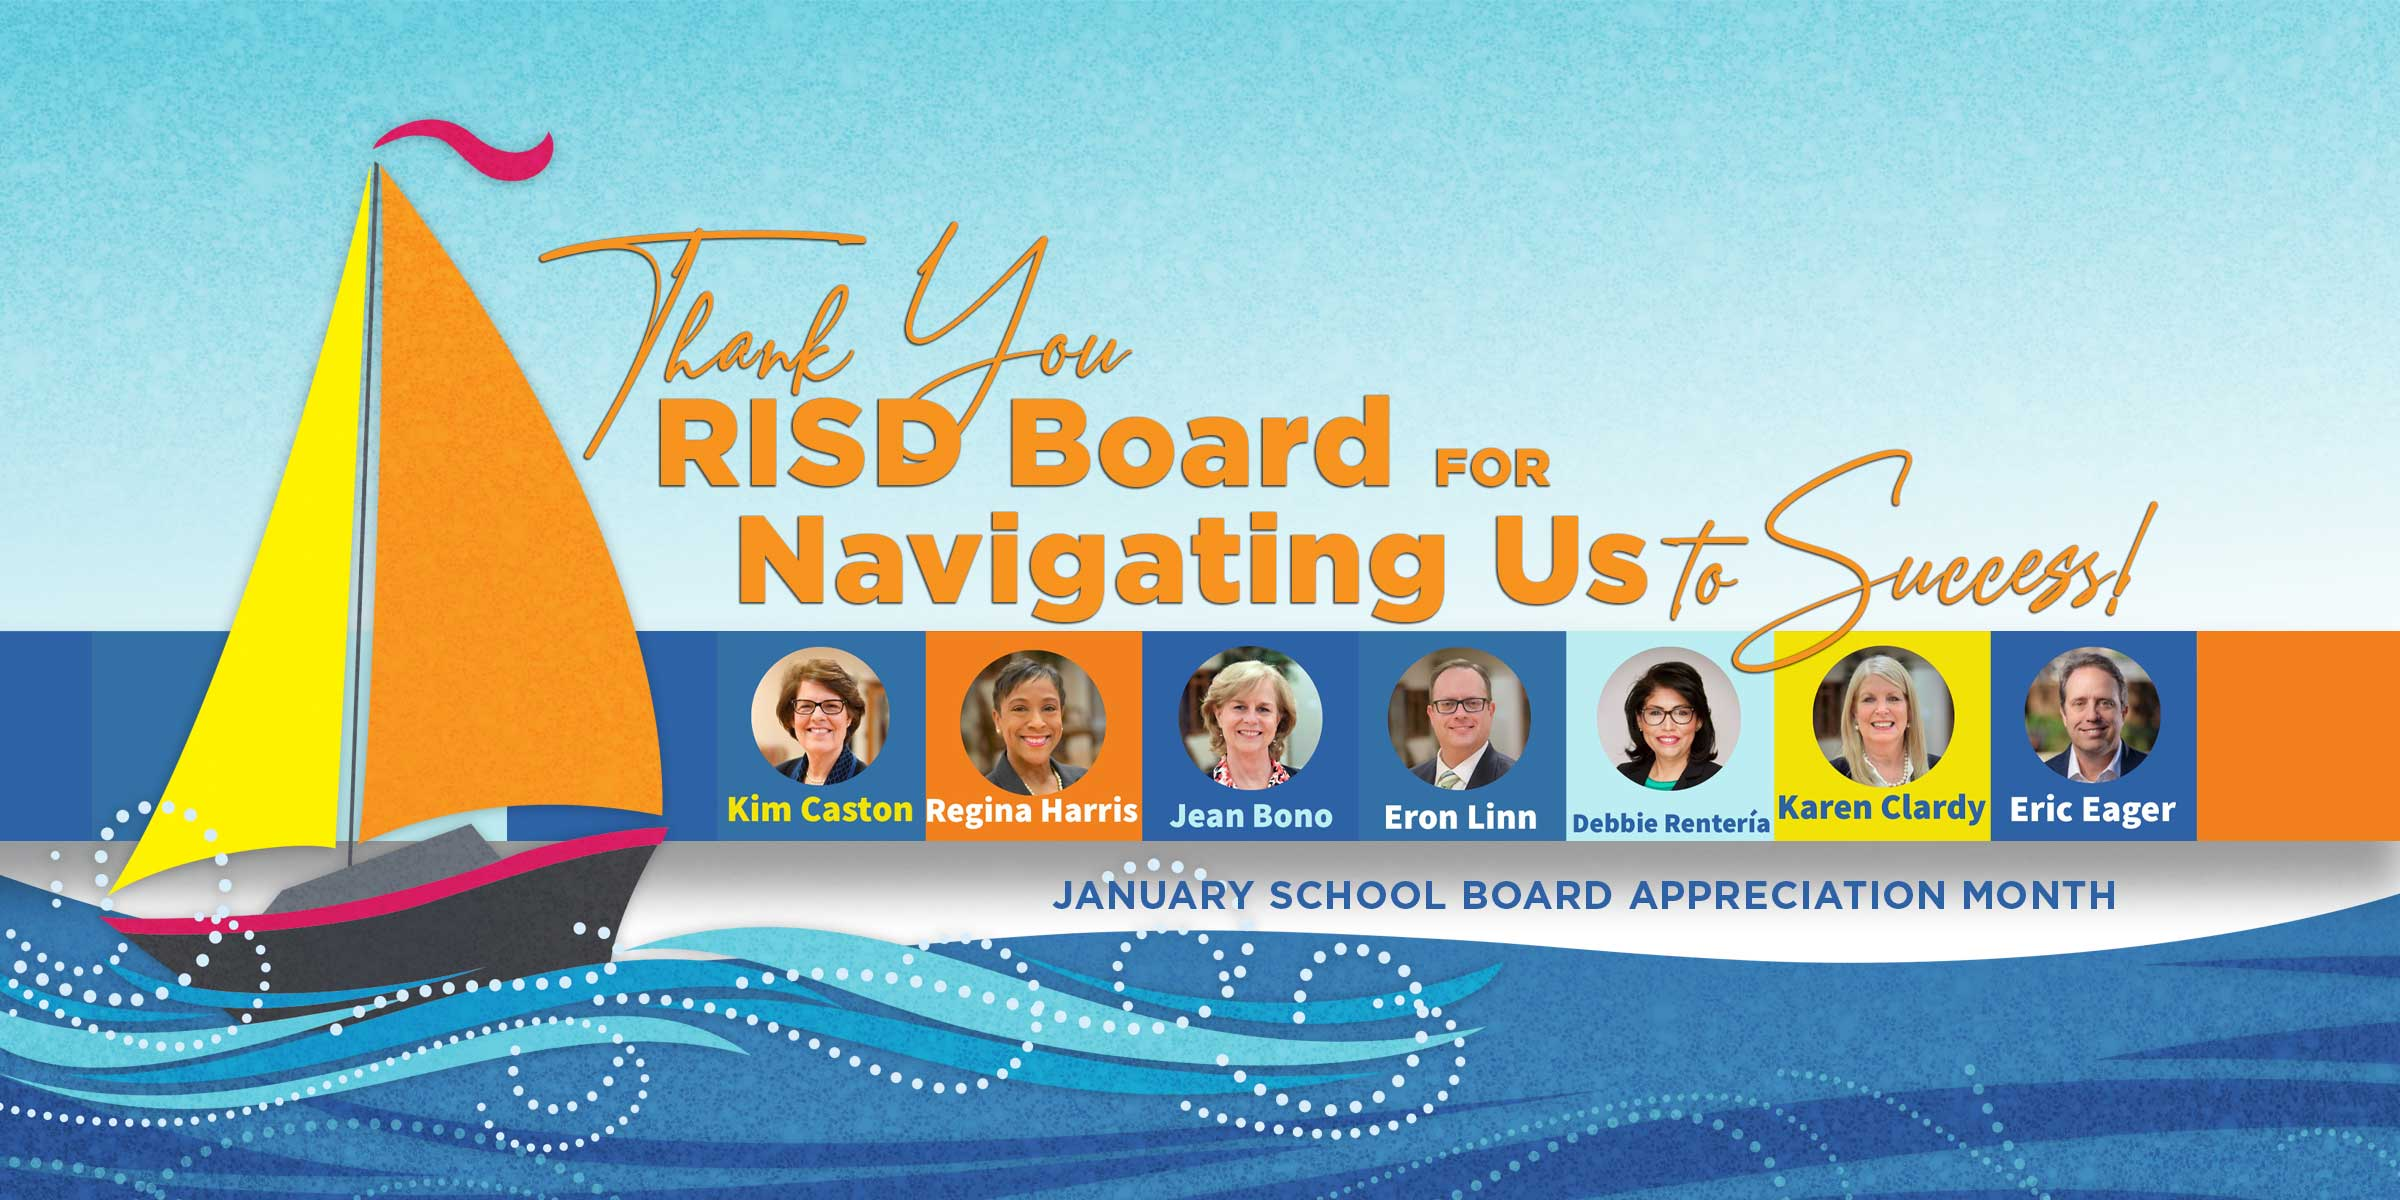 Thank you RISD board to navigating us to success, January school board appreciation month